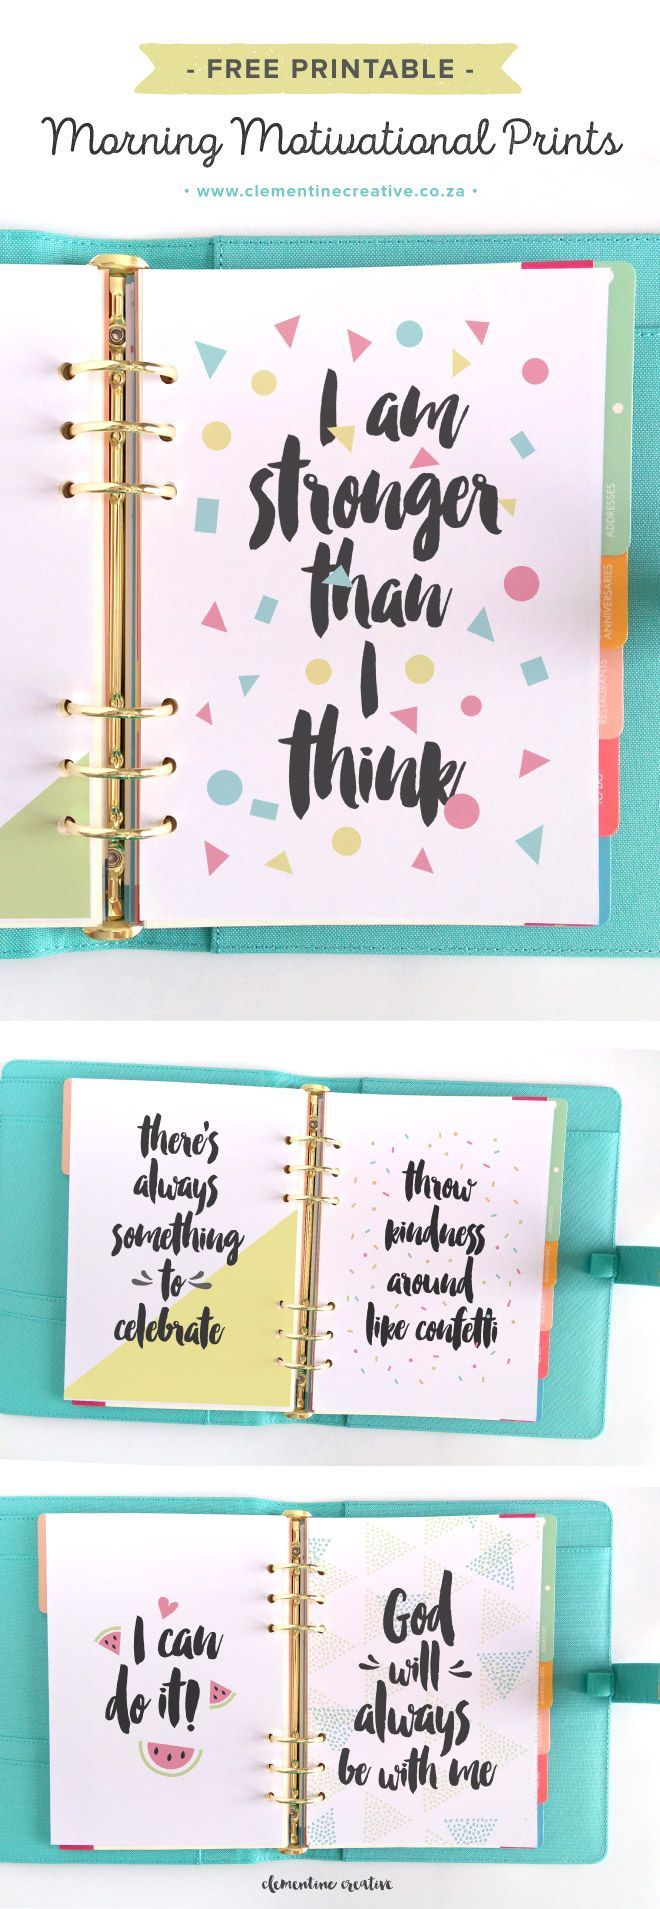 If you need a little encouragement in the morning or throughout the day, these…